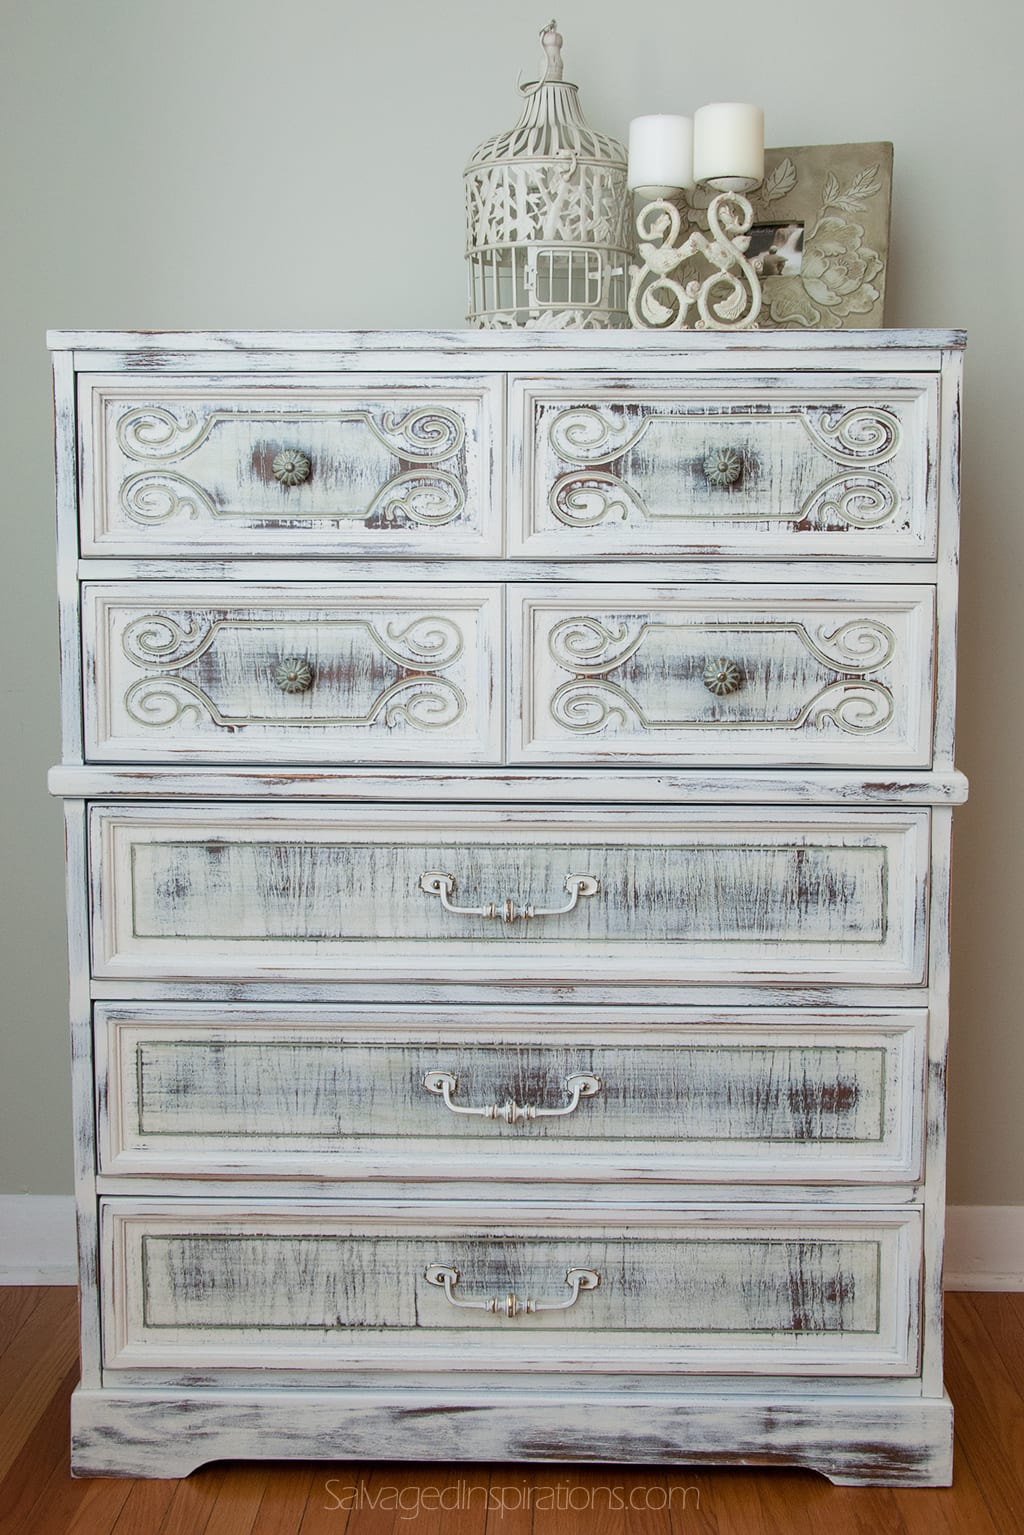 milk painted shabby chippy chic dresser salvaged inspirations. Black Bedroom Furniture Sets. Home Design Ideas